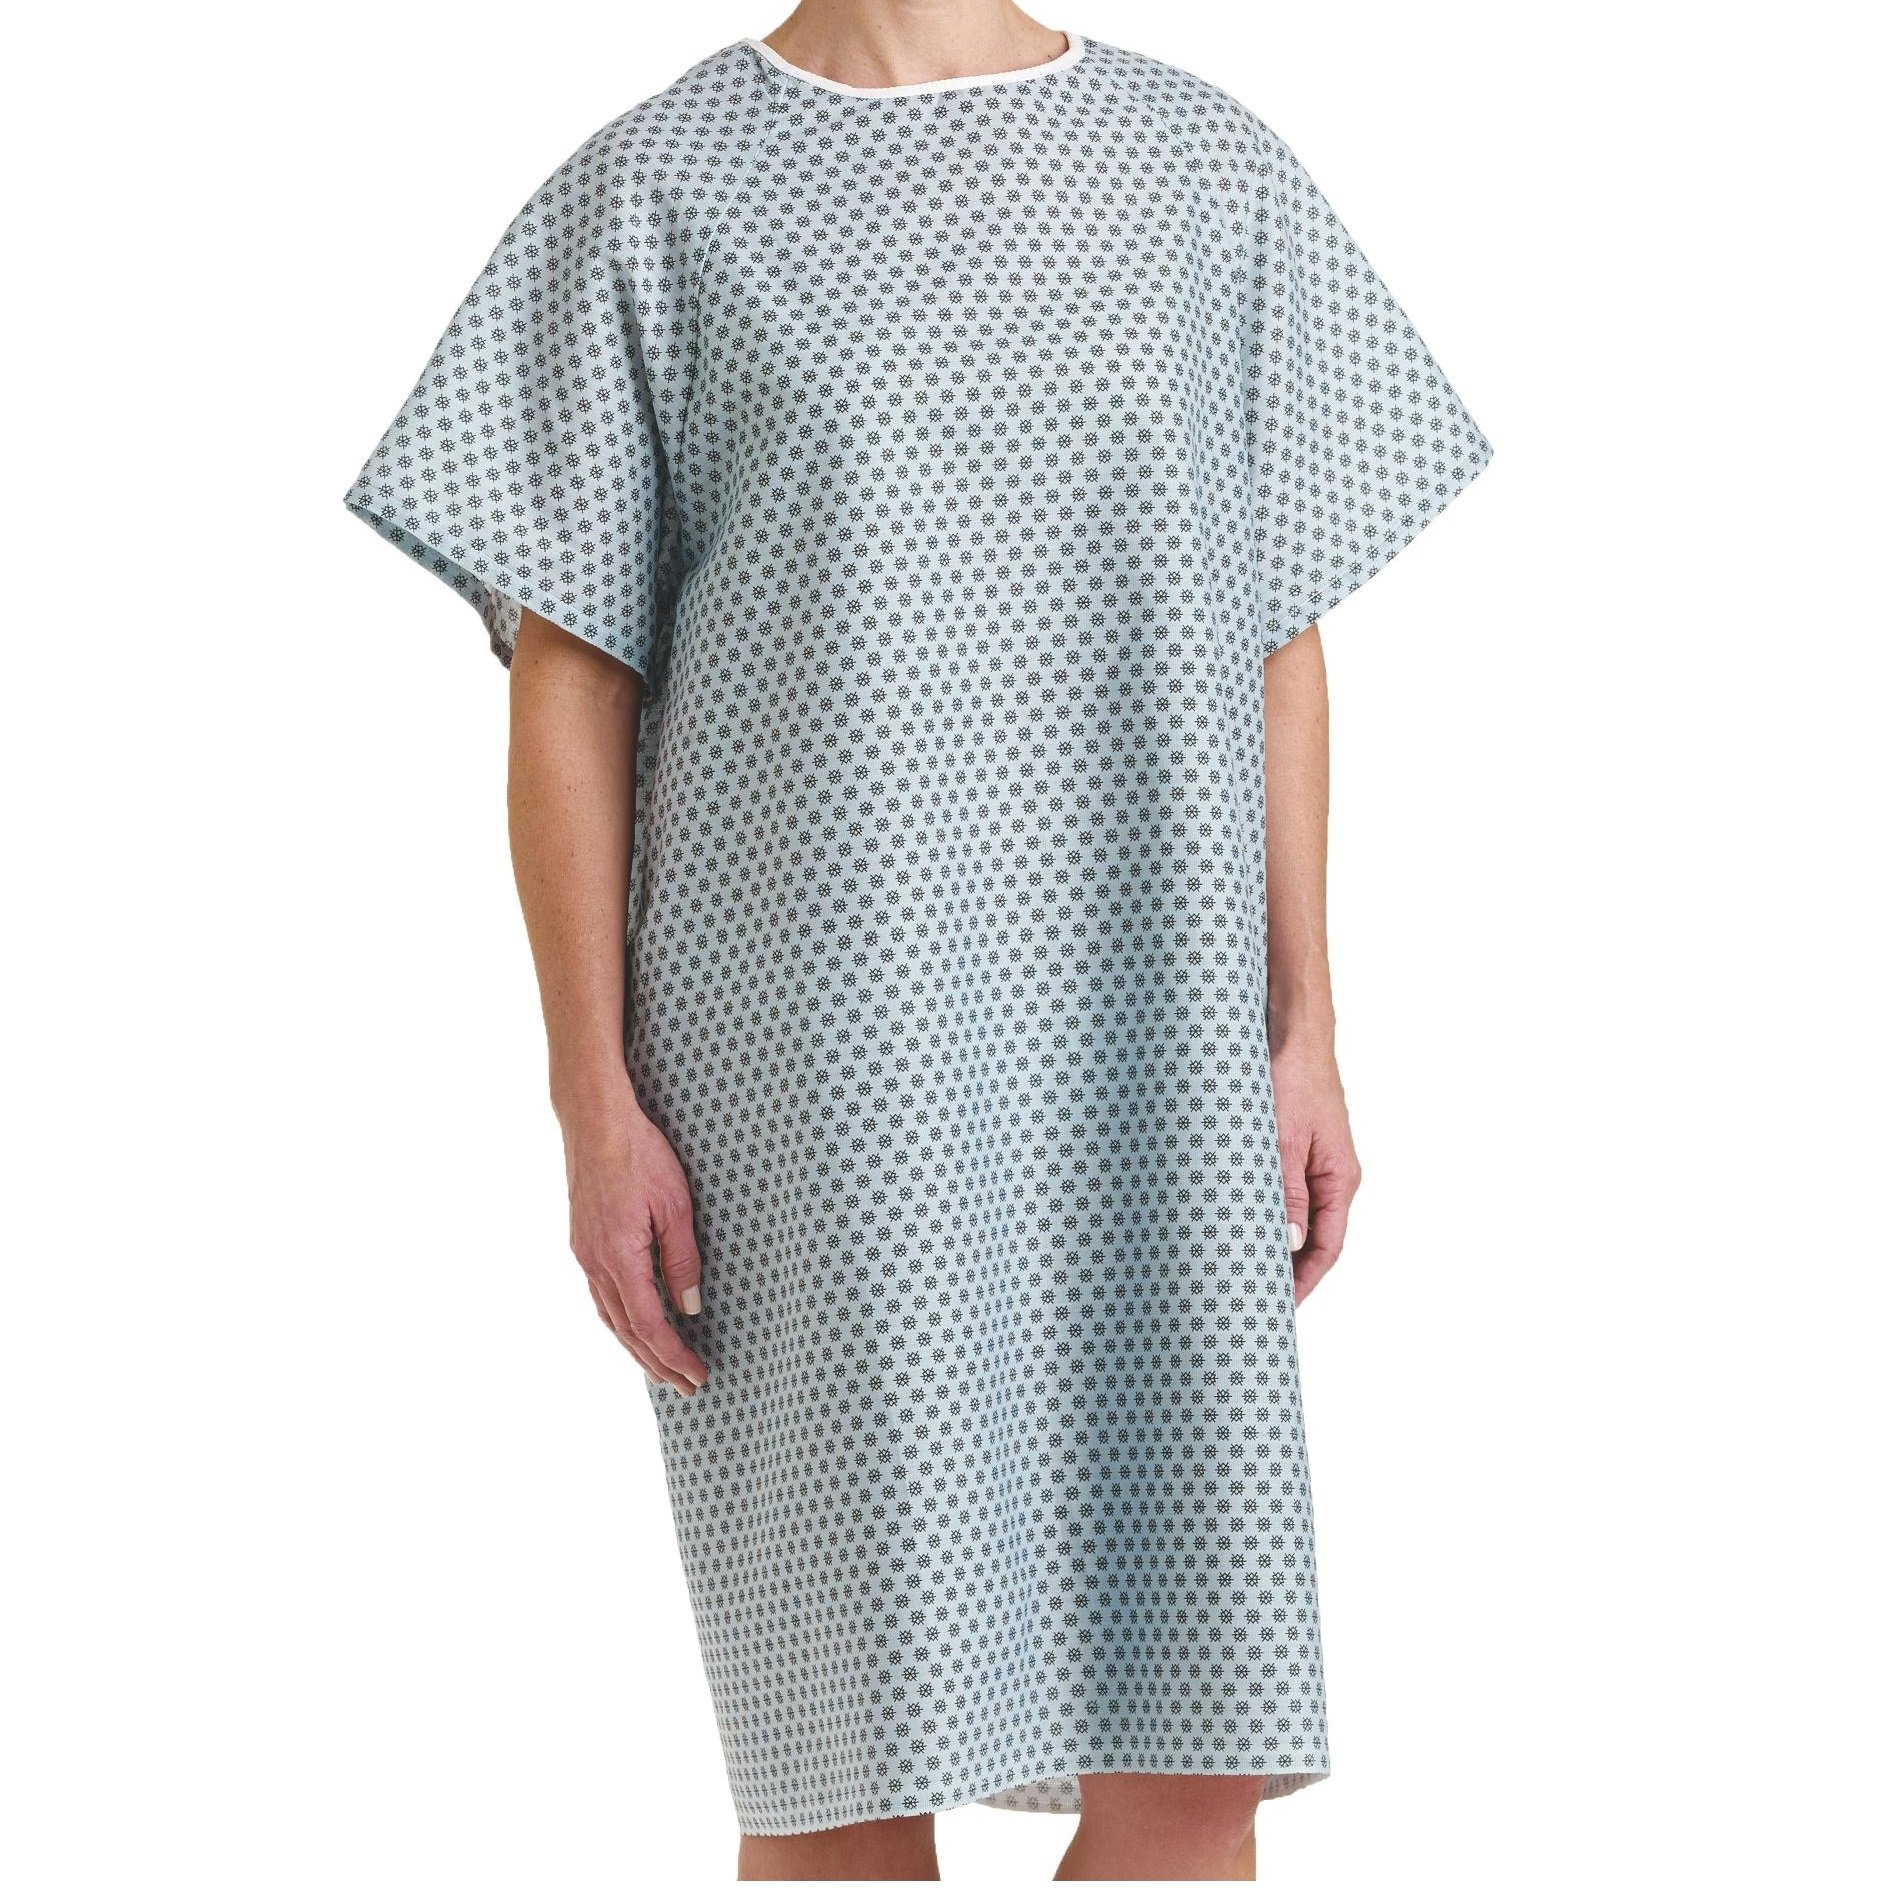 Deluxe Patient Hospital Gown, Easy Care, Soft & Comfortable Gowns - 12Pk by Elaine Karen